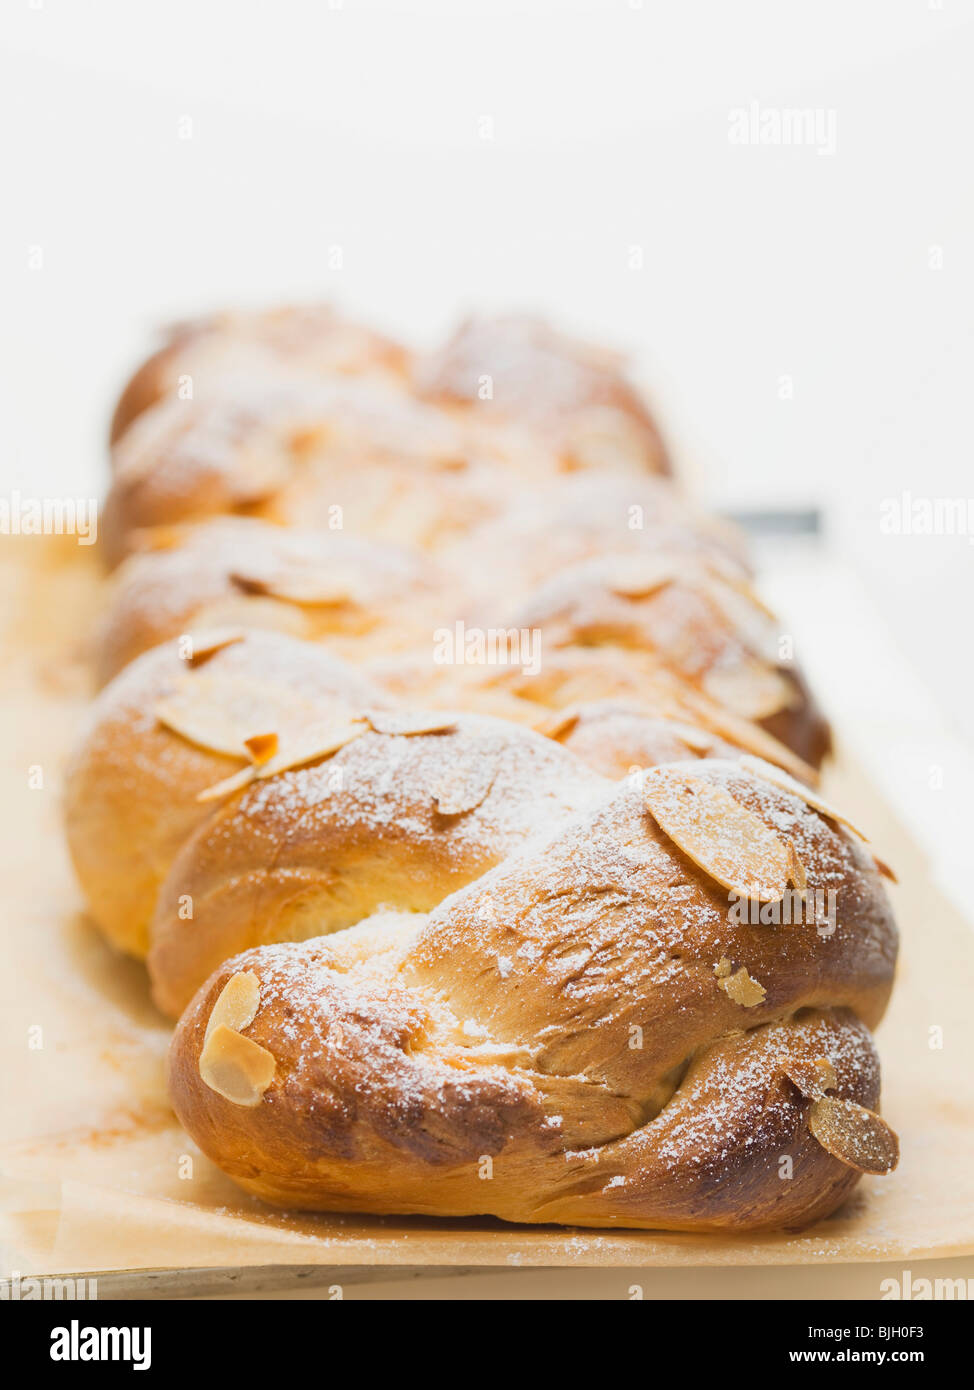 Bread plait with flaked almonds & icing sugar on baking parchment - - Stock Image